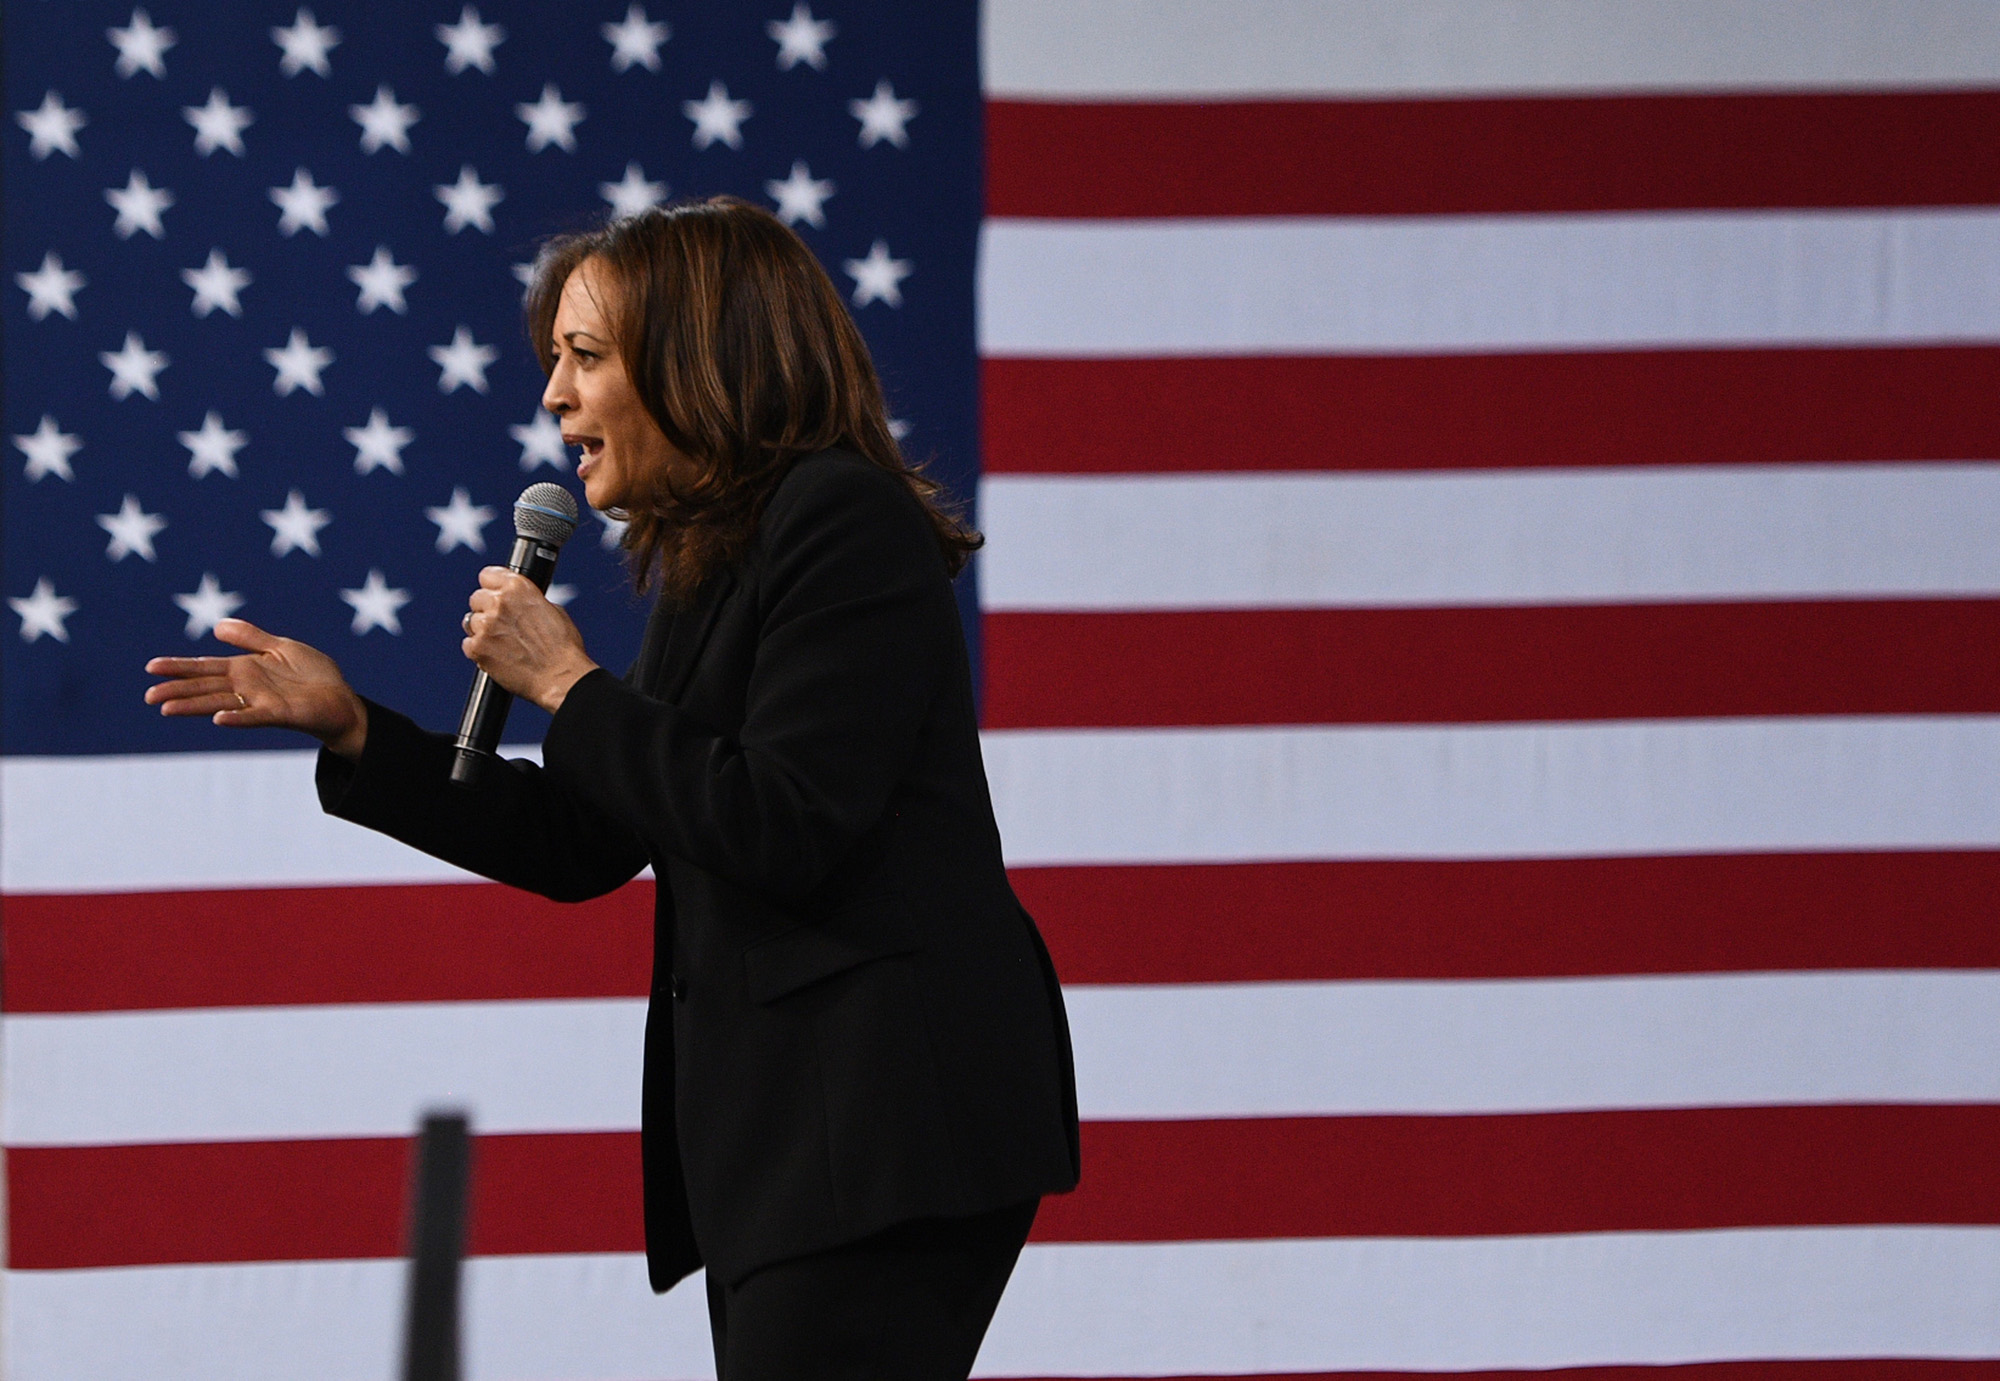 Kamala Harris Vaults Into Second Place as Joe Biden Slips After First Debate